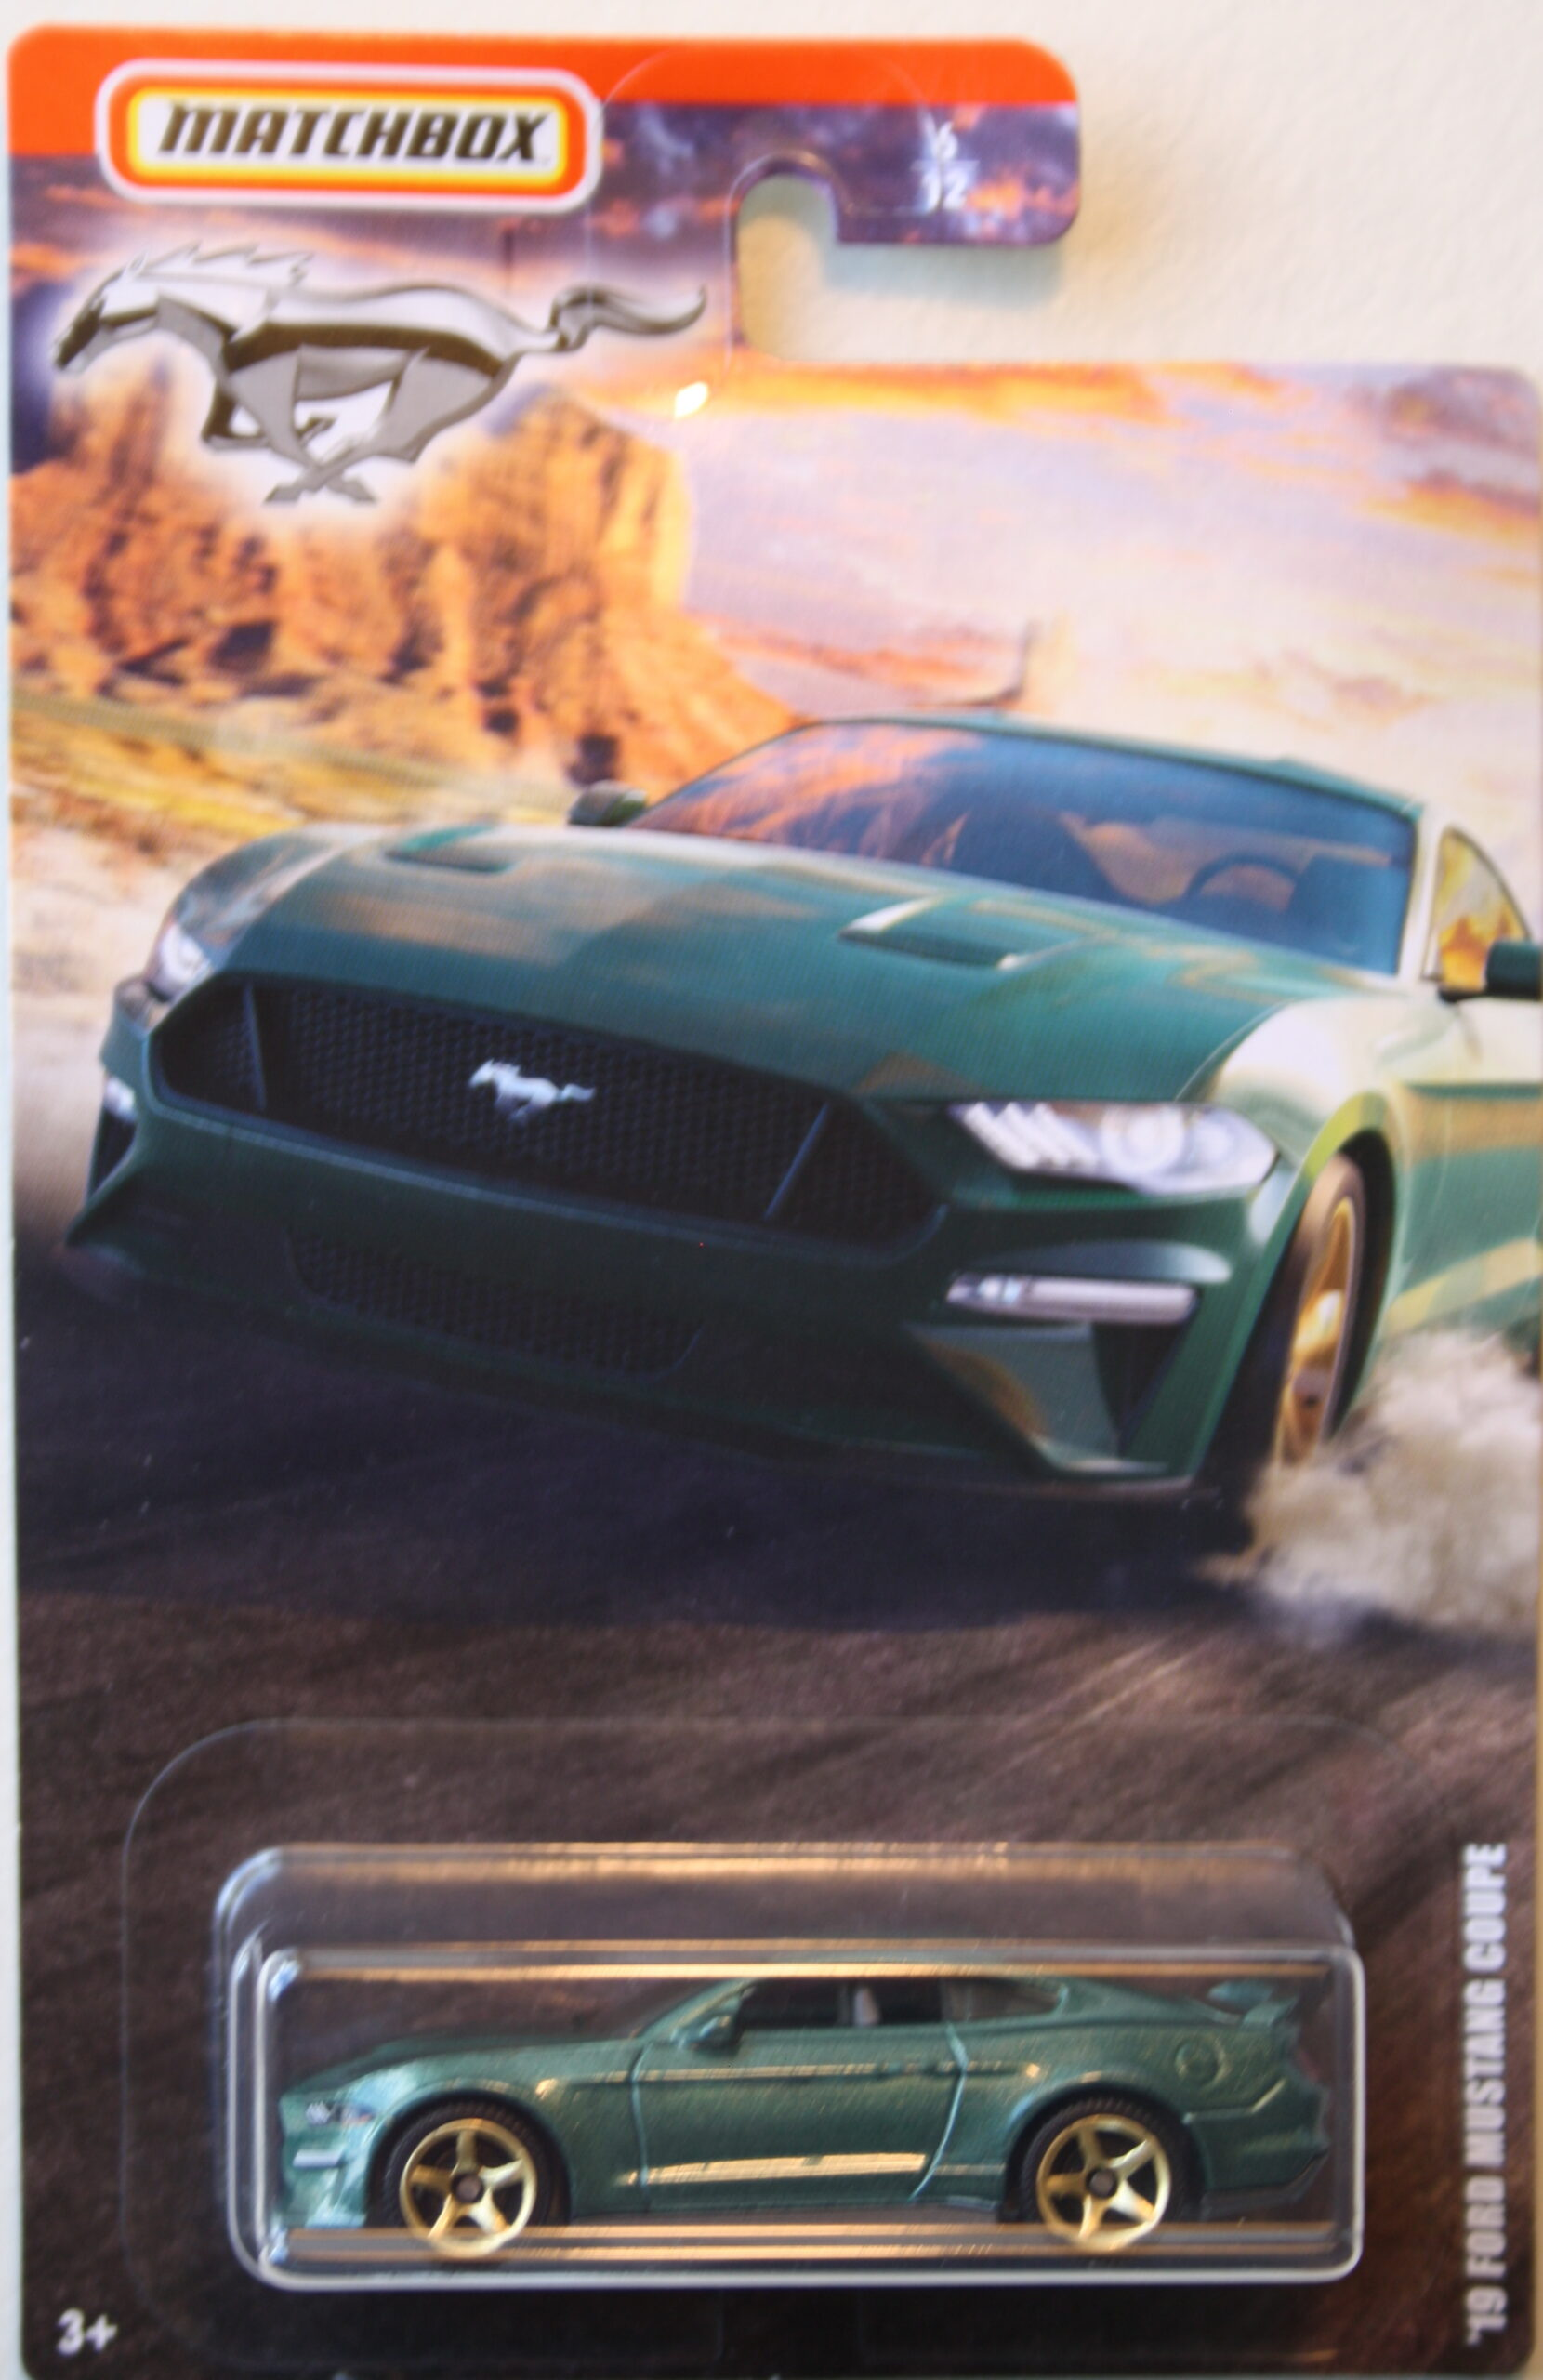 Matchbox Ford Mustang 2019 Ford Mustang Coupe green